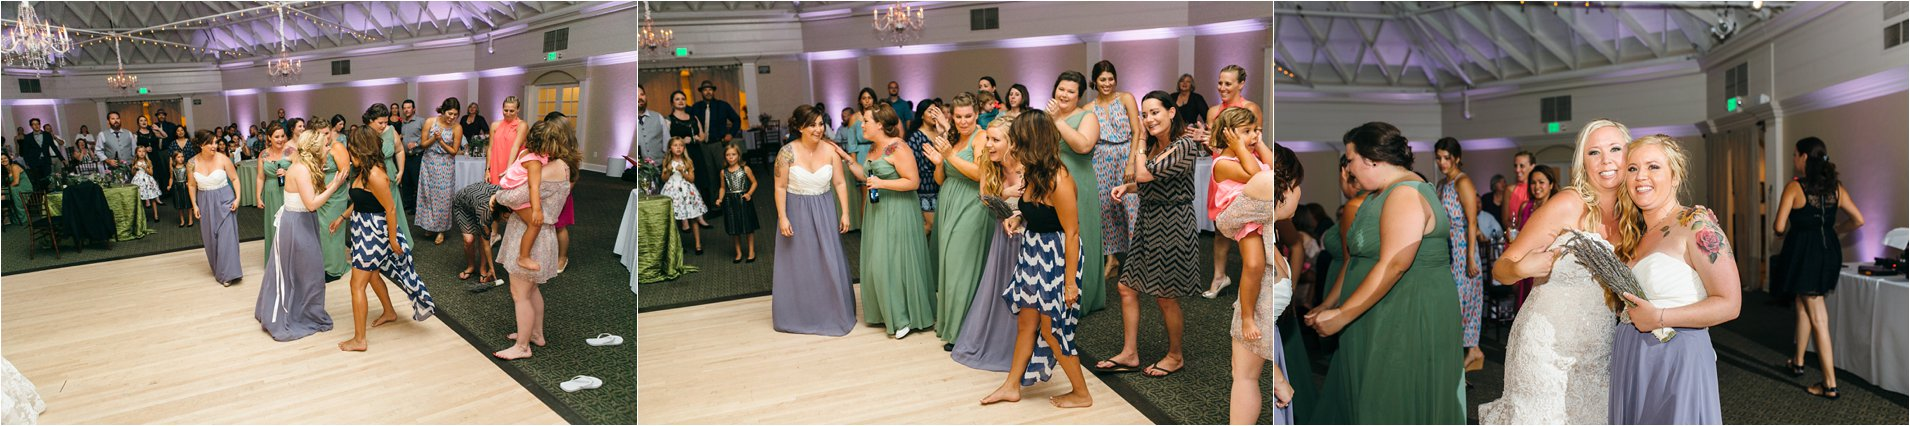 All the single ladies - Bouquet Toss